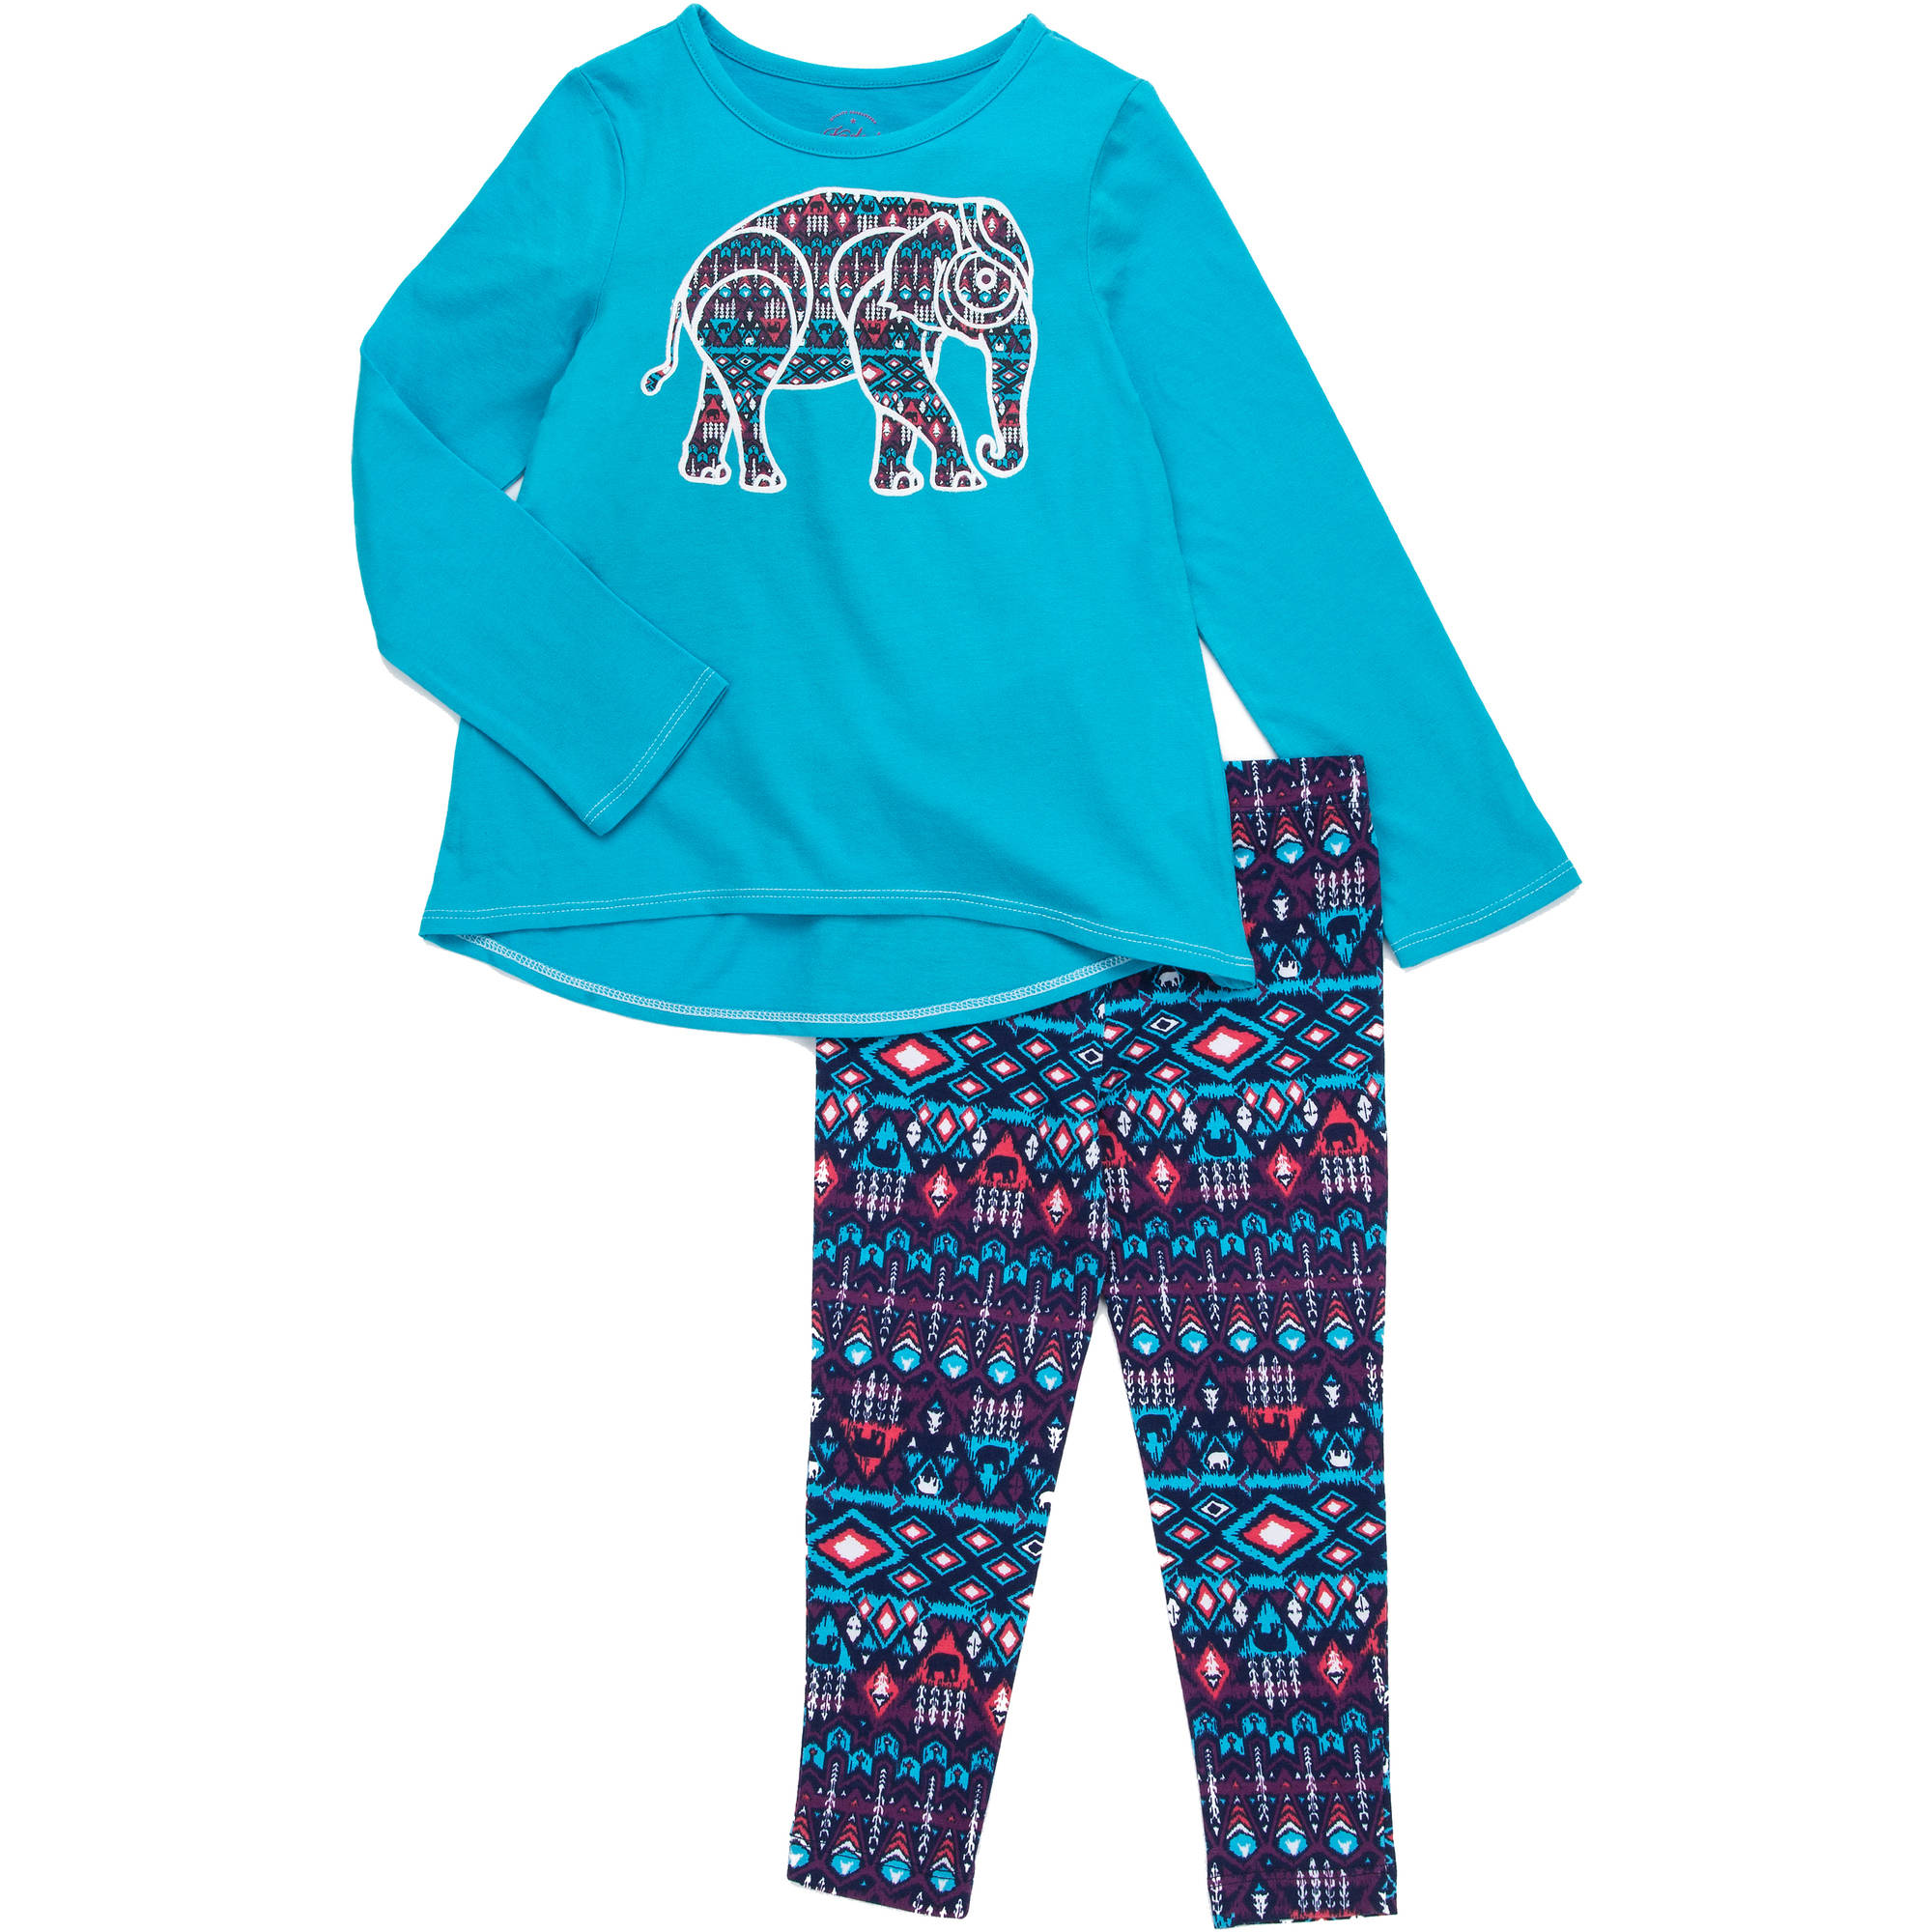 Faded Glory Girls' Long Sleeve Hi Lo Top and Legging Set